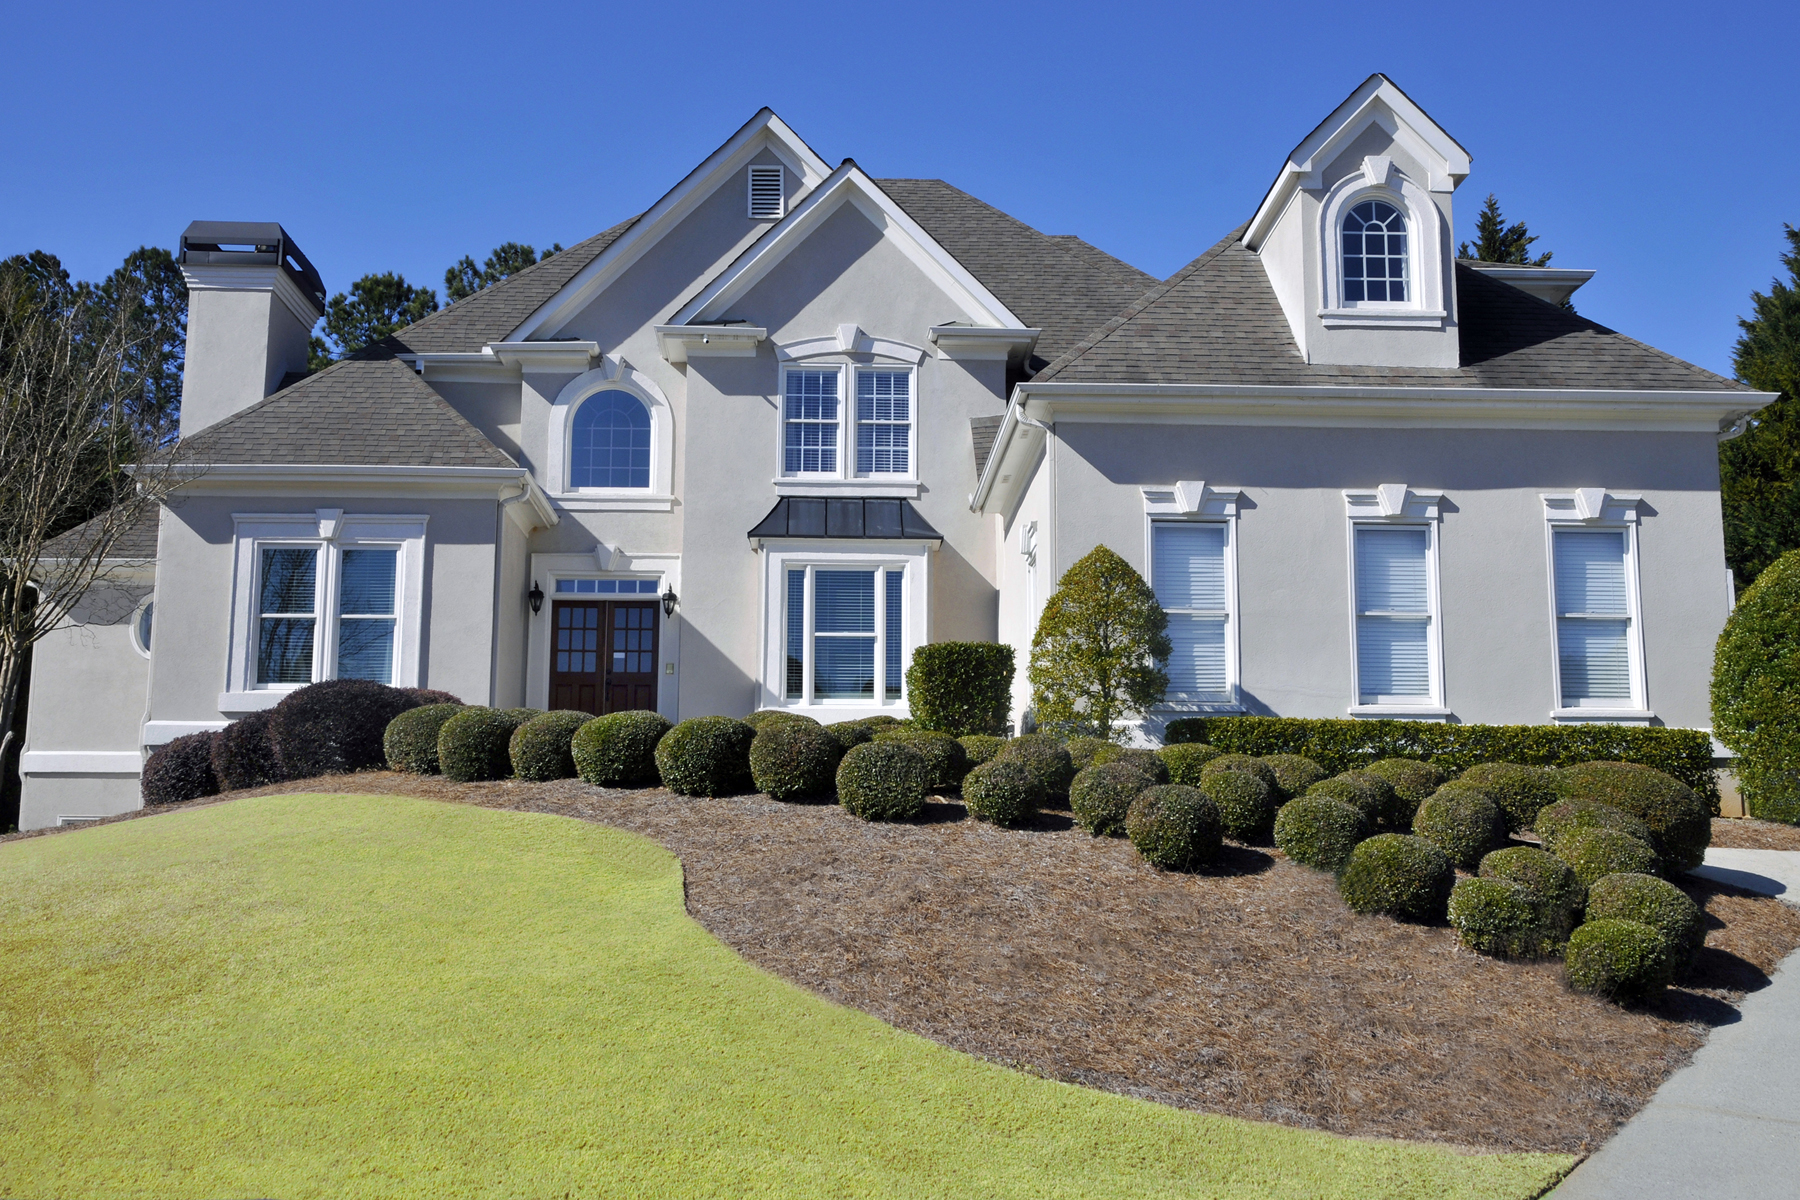 Single Family Home for Sale at Beautifully Updated European Traditional in Johns Creek 1007 Bay Tree Ln Johns Creek, Georgia 30097 United States